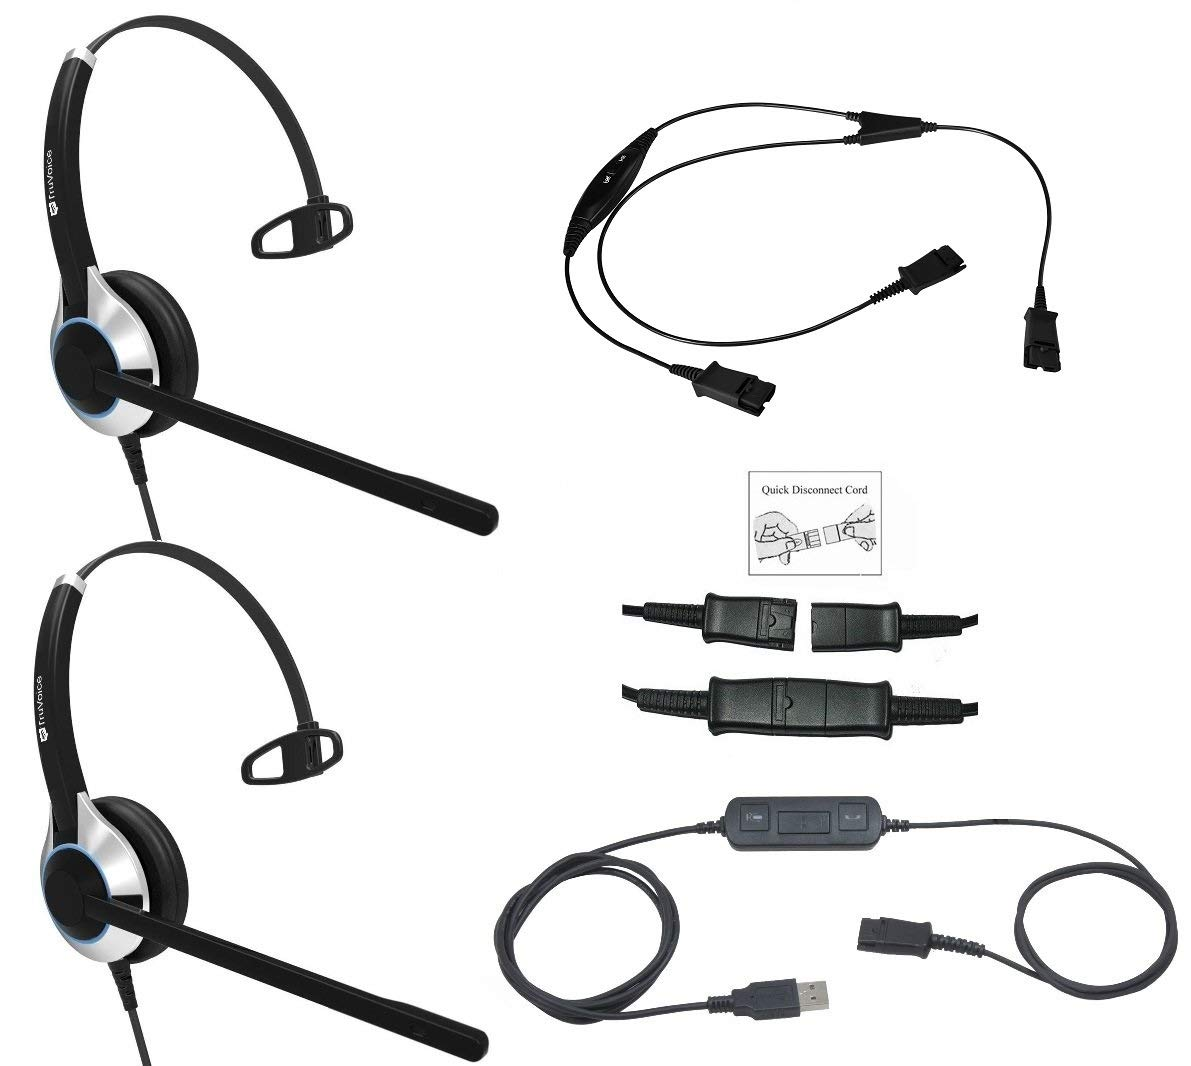 Deluxe USB Headset Training Solution (Includes 2 x TruVoice HD-500 Single Ear Noise Canceling Microphone Headsets, USB Cable with Mute and Volume Controls and a Training Y Cable) by TruVoice